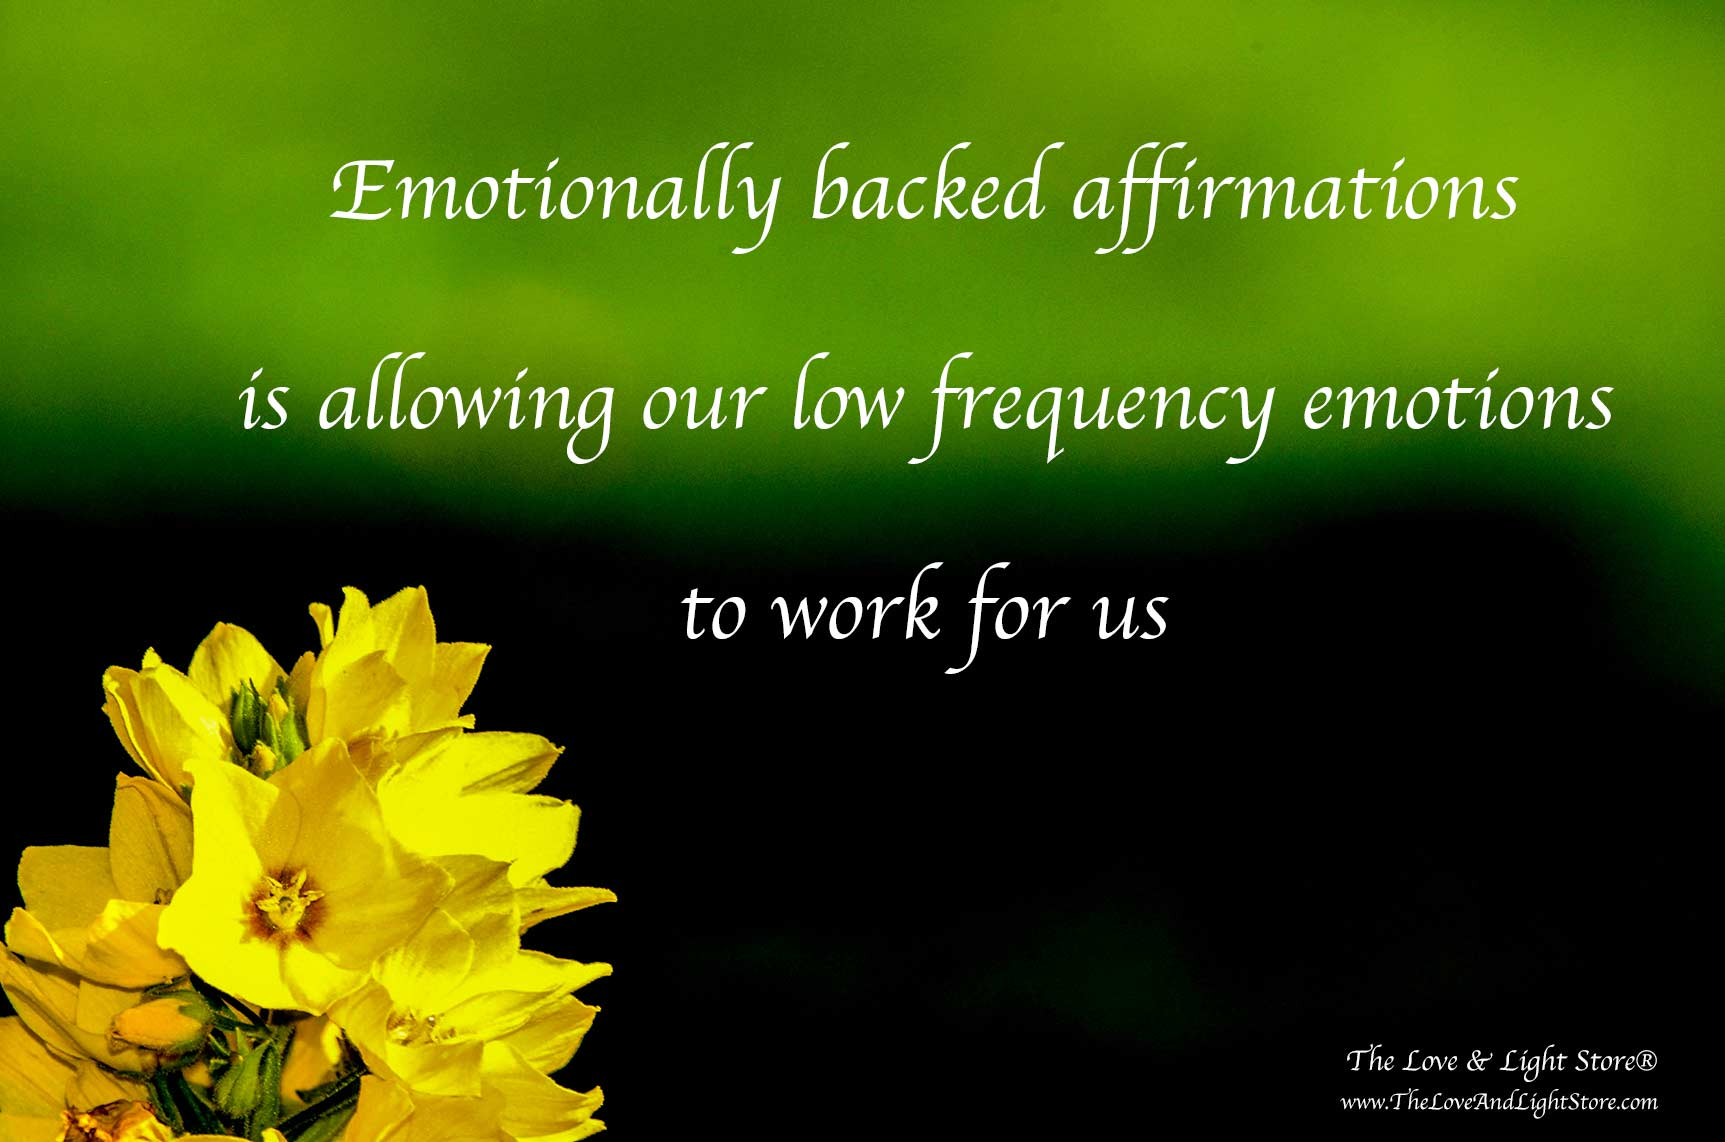 Use emotionally backed affirmations in the face of negativity